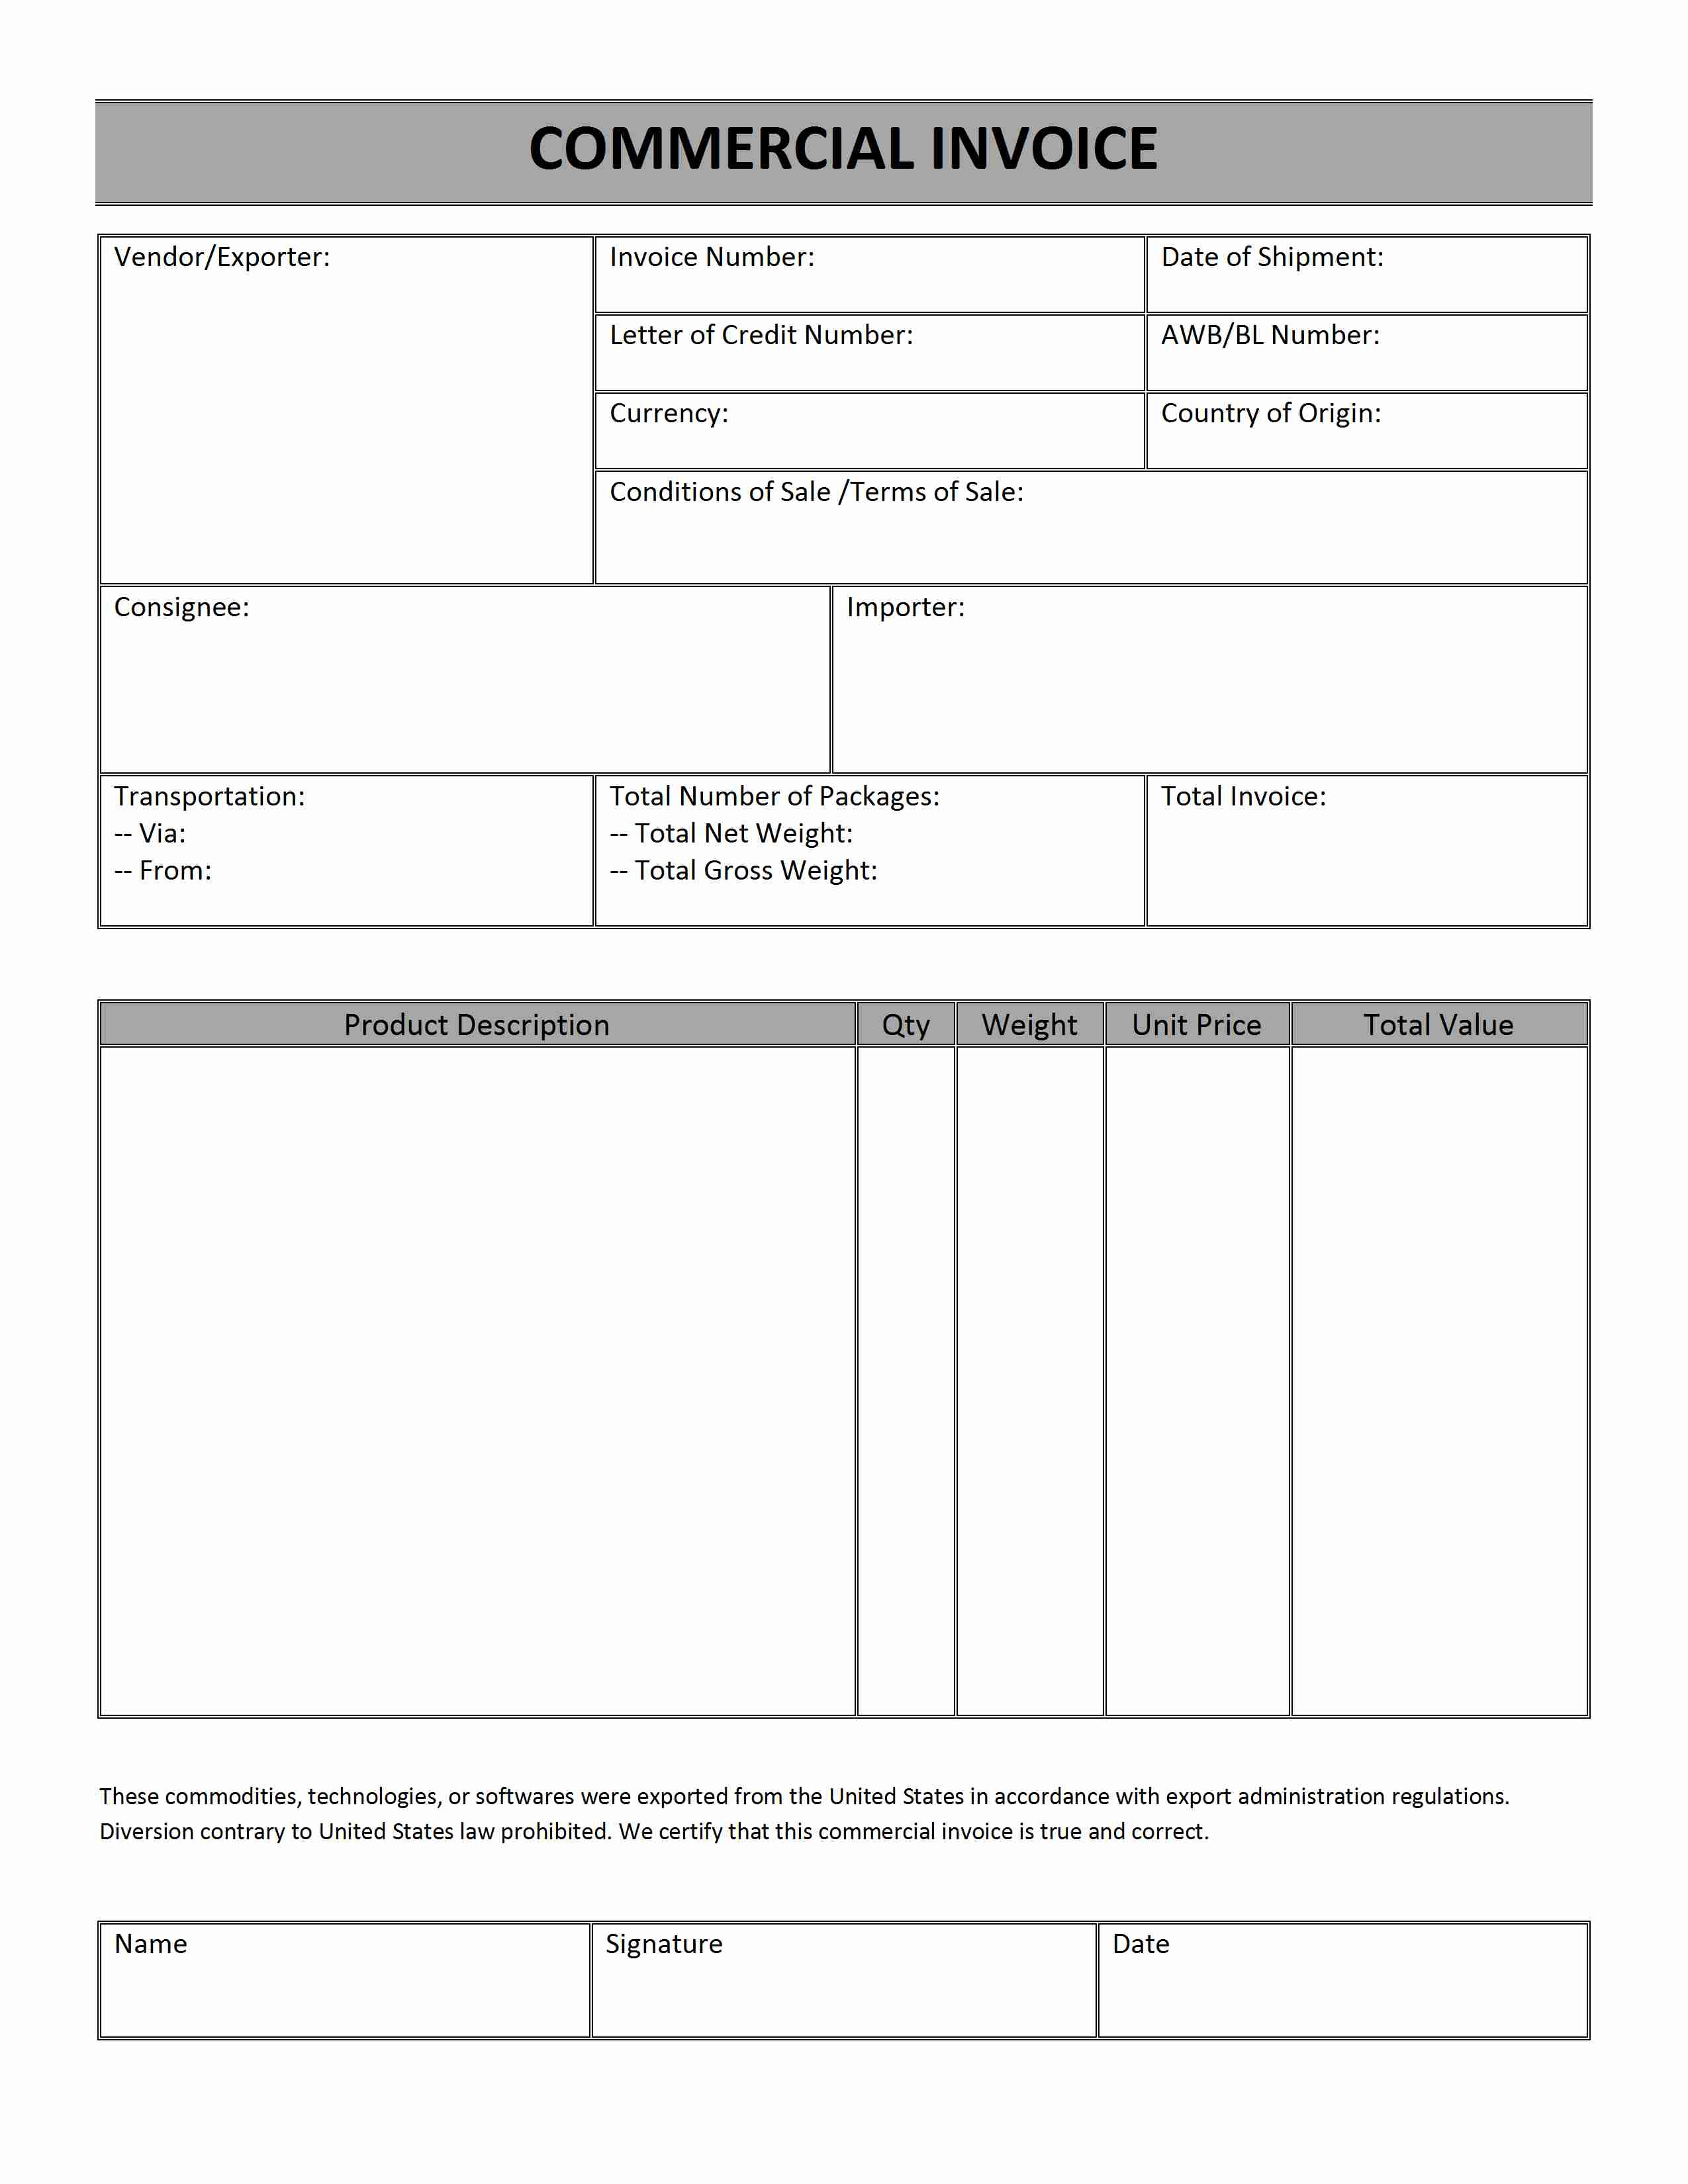 Totallocalus  Remarkable Printable Sales Invoice Simple Invoice Form Free Invoice  With Remarkable Printable Receipt Free  Free Printable Raffle Tickets  Receipt   Printable With Cool Preparing Invoices Also Blank Invoice Template Microsoft Word In Addition Debit Note Invoice And Template Excel Invoice As Well As Blank Invoice Form Excel Additionally Ford Factory Invoice From Happytomco With Totallocalus  Remarkable Printable Sales Invoice Simple Invoice Form Free Invoice  With Cool Printable Receipt Free  Free Printable Raffle Tickets  Receipt   Printable And Remarkable Preparing Invoices Also Blank Invoice Template Microsoft Word In Addition Debit Note Invoice From Happytomco